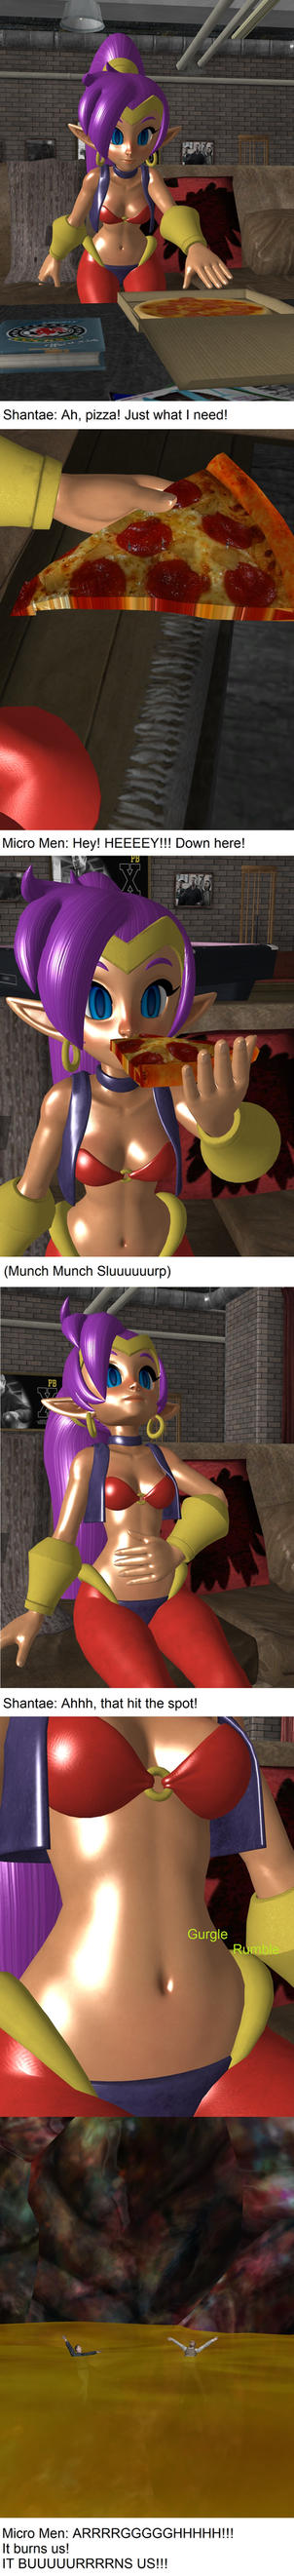 Shantae's Pests Pt 3 by roodedude